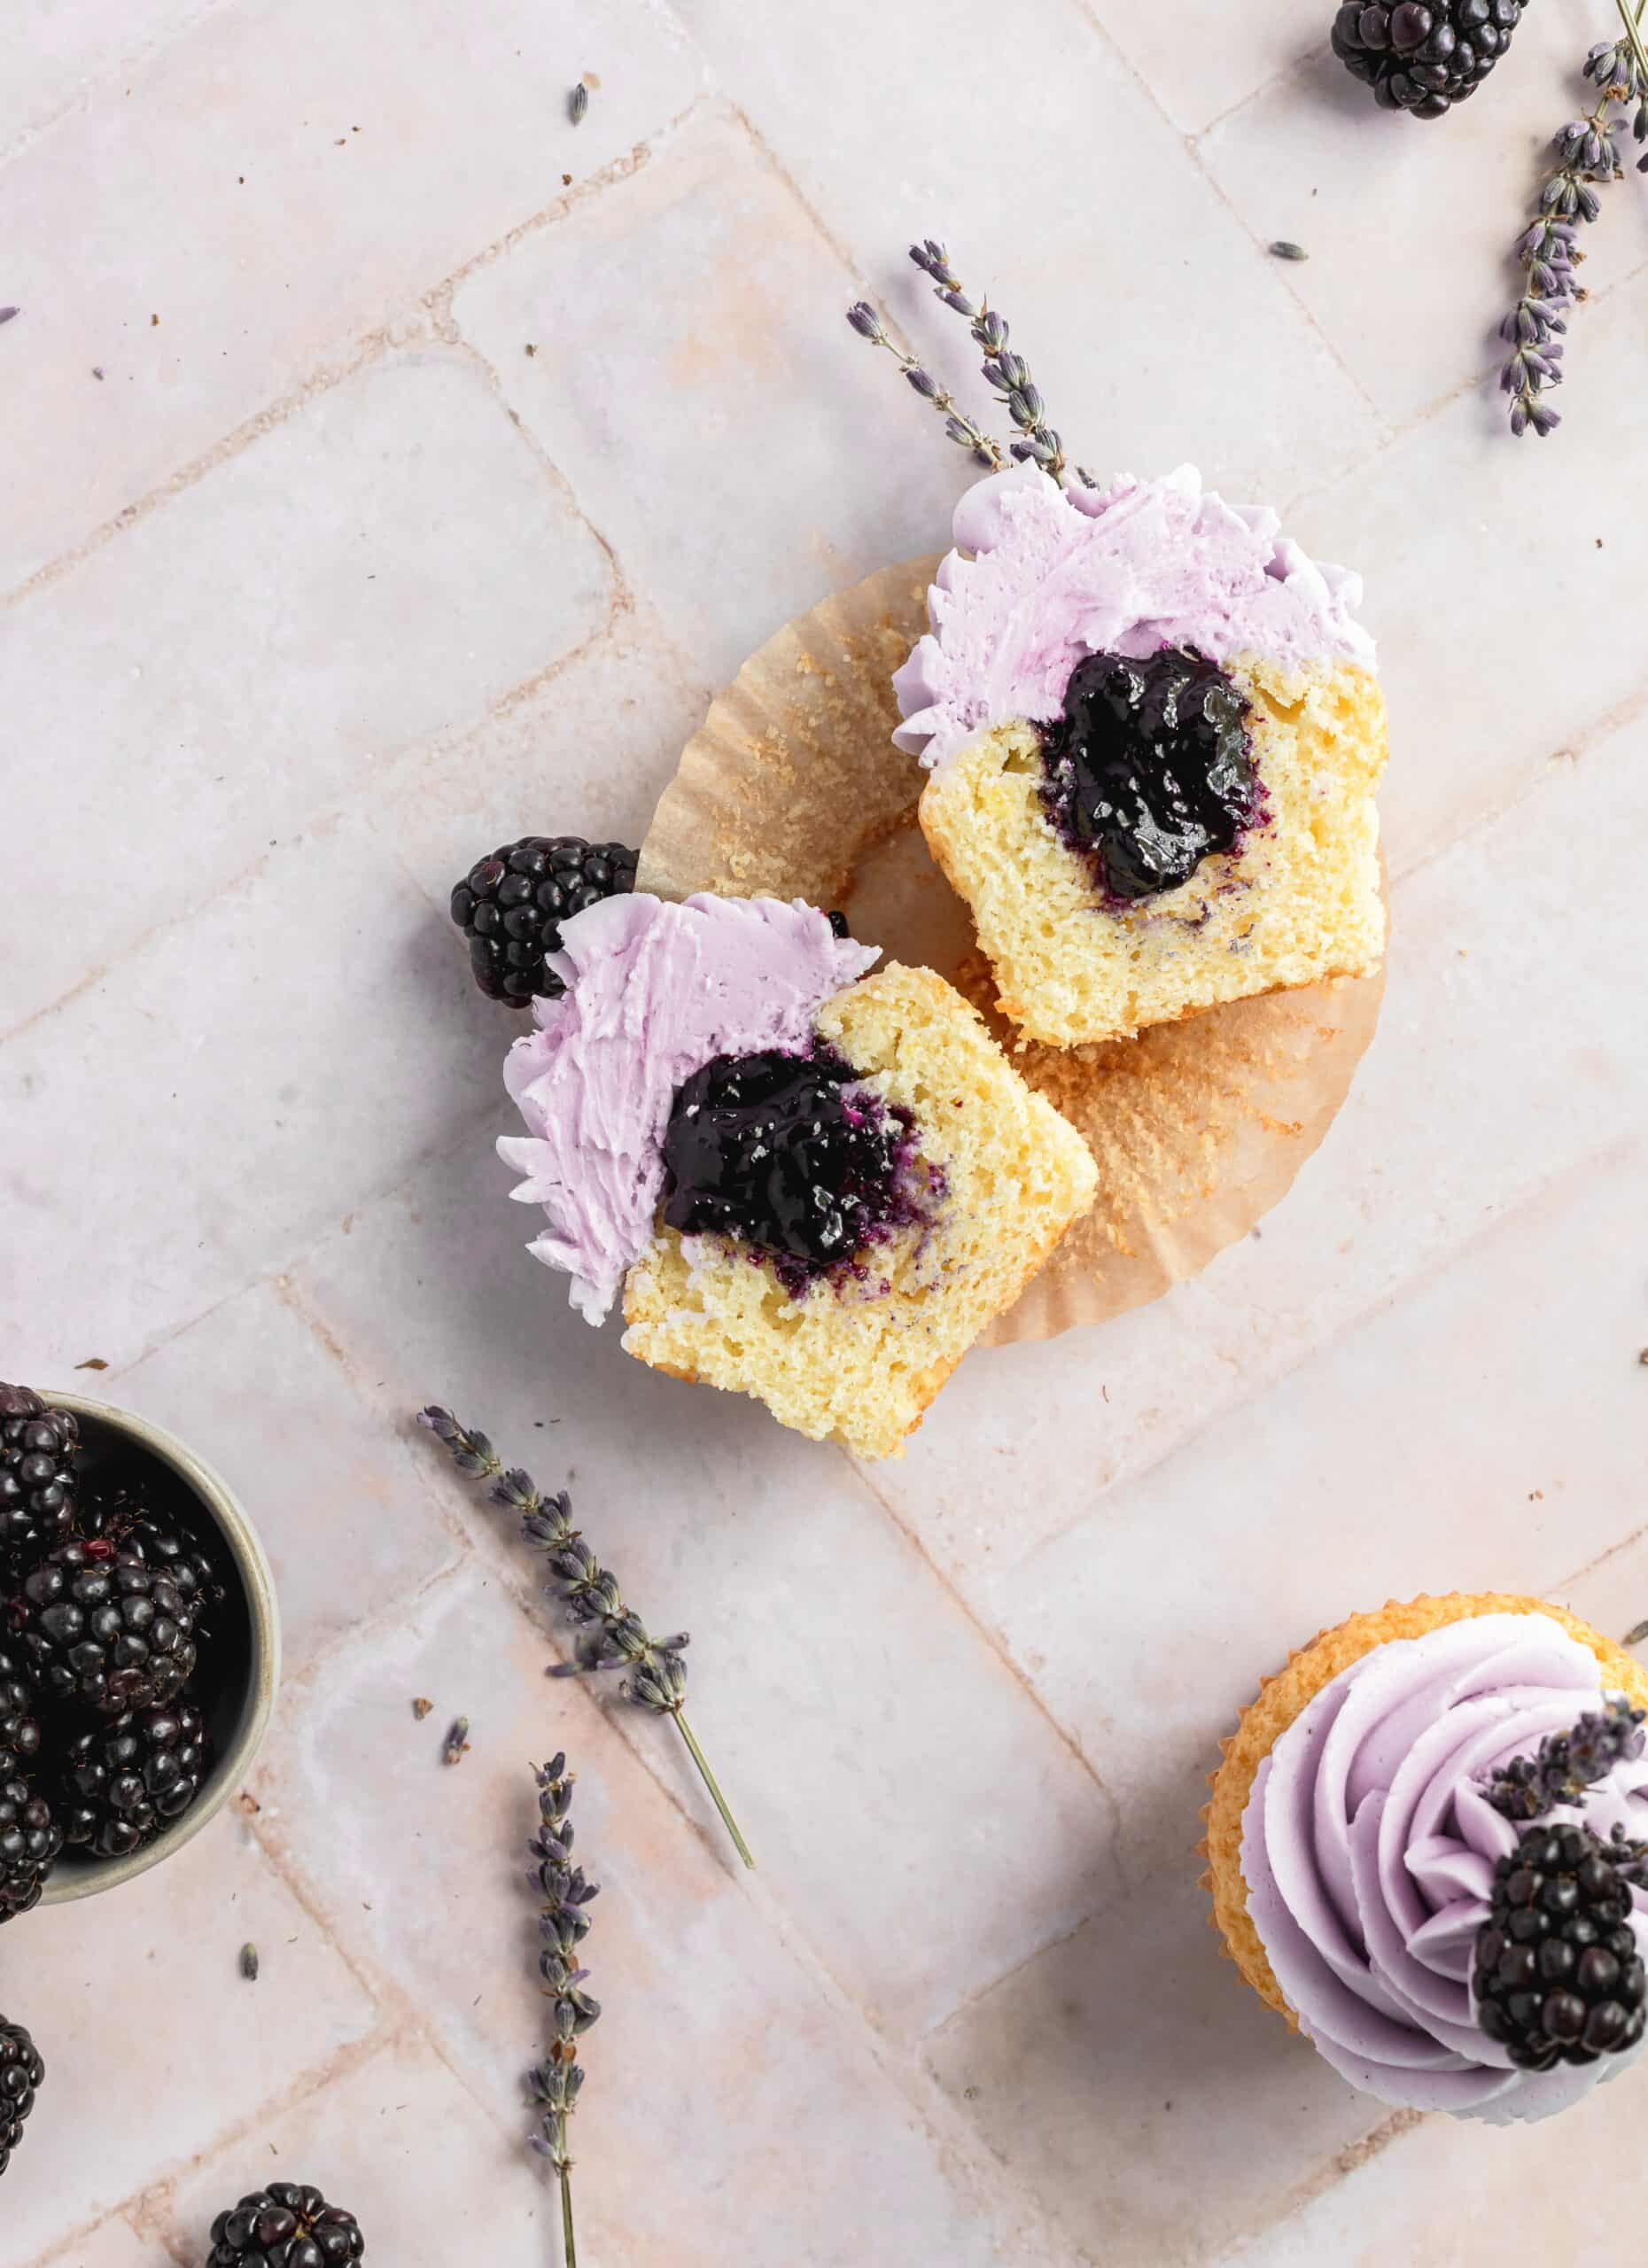 cupcake cut in half to see blackberry filling